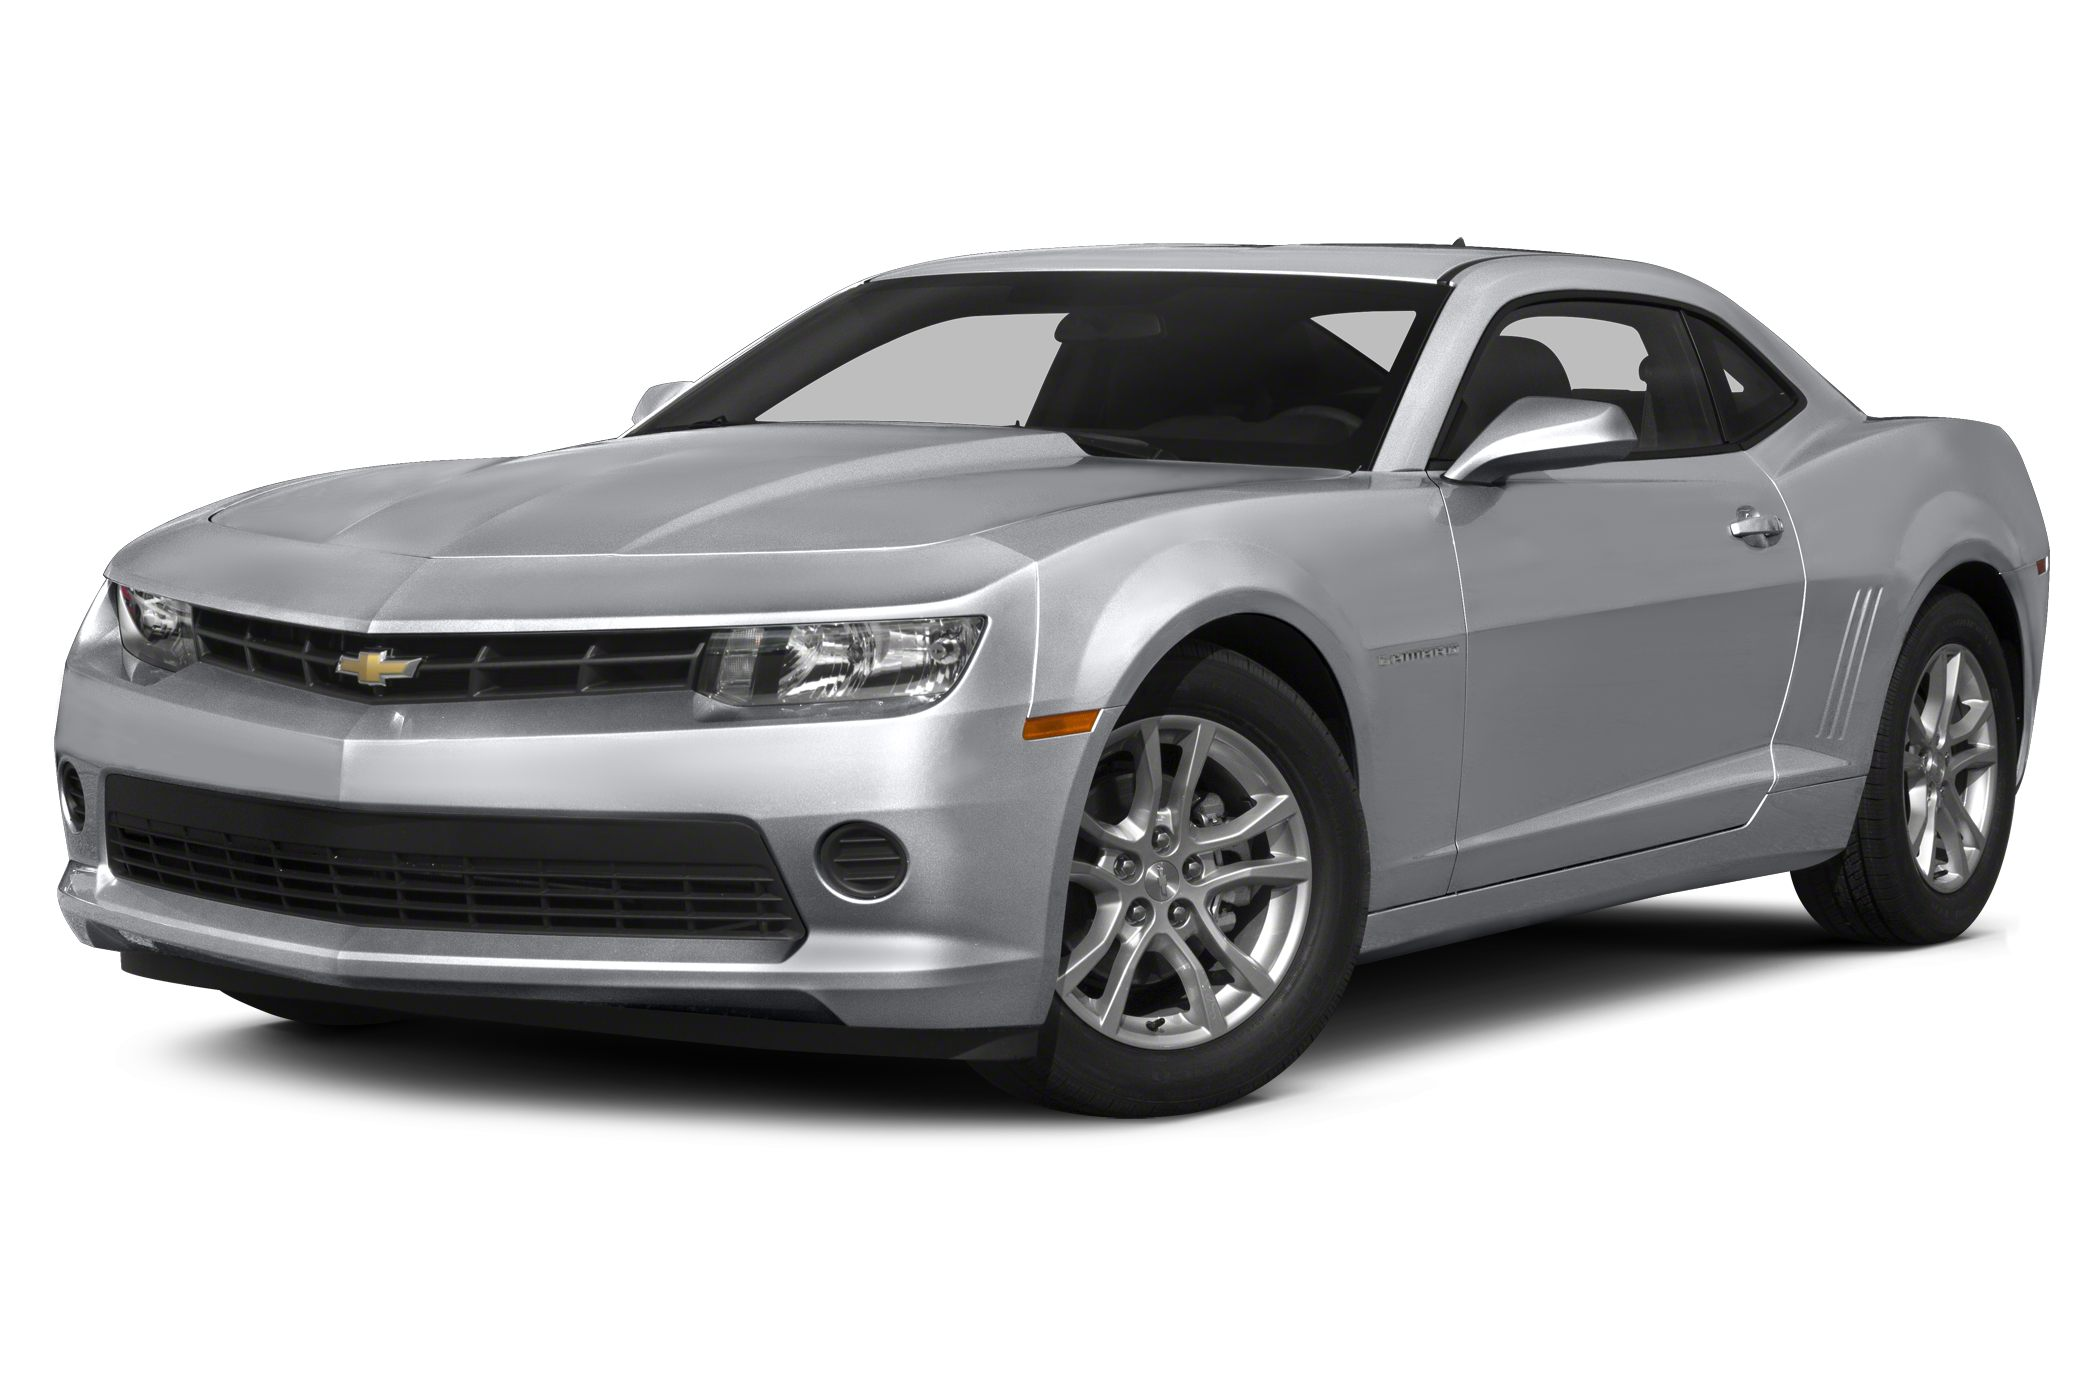 2015 Chevrolet Camaro 1LT Coupe for sale in Jonesboro for $32,500 with 0 miles.